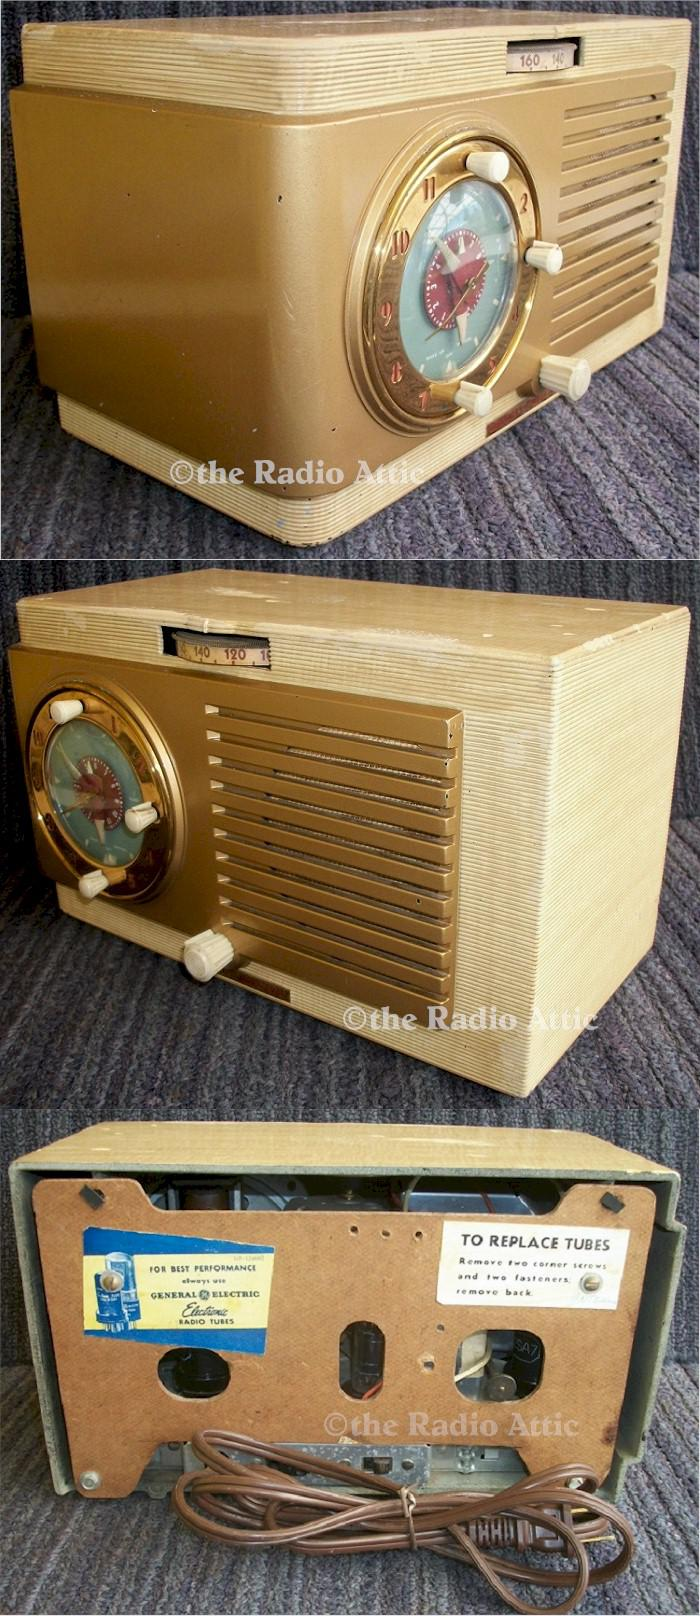 General Electric 508 Clock Radio (1950)